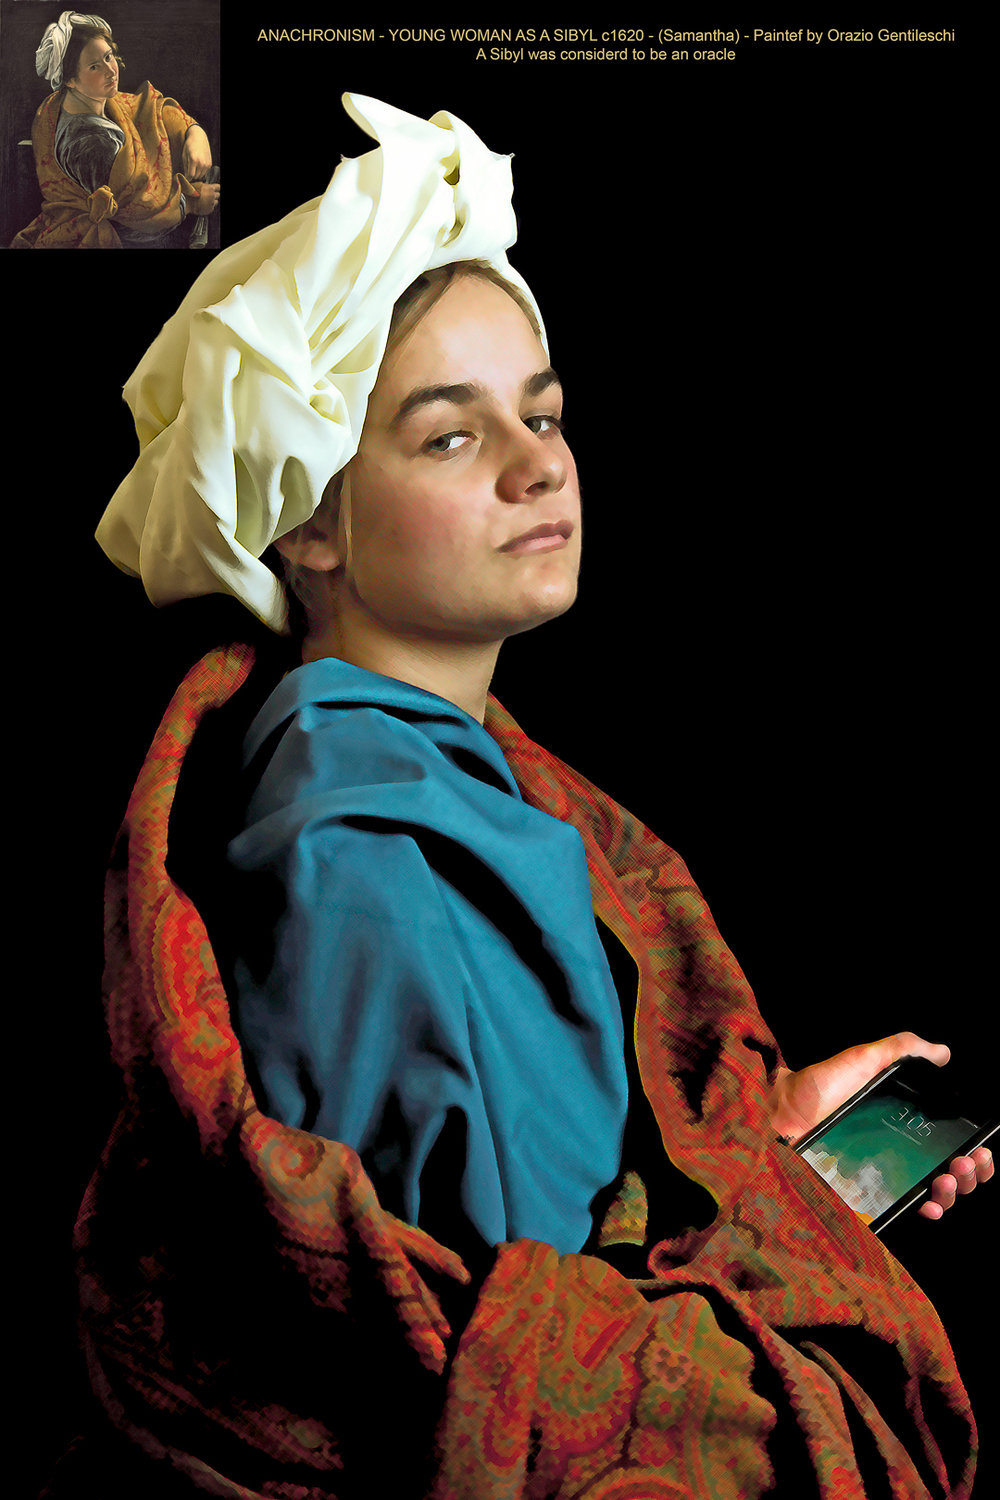 Young Woman as a Sibyl